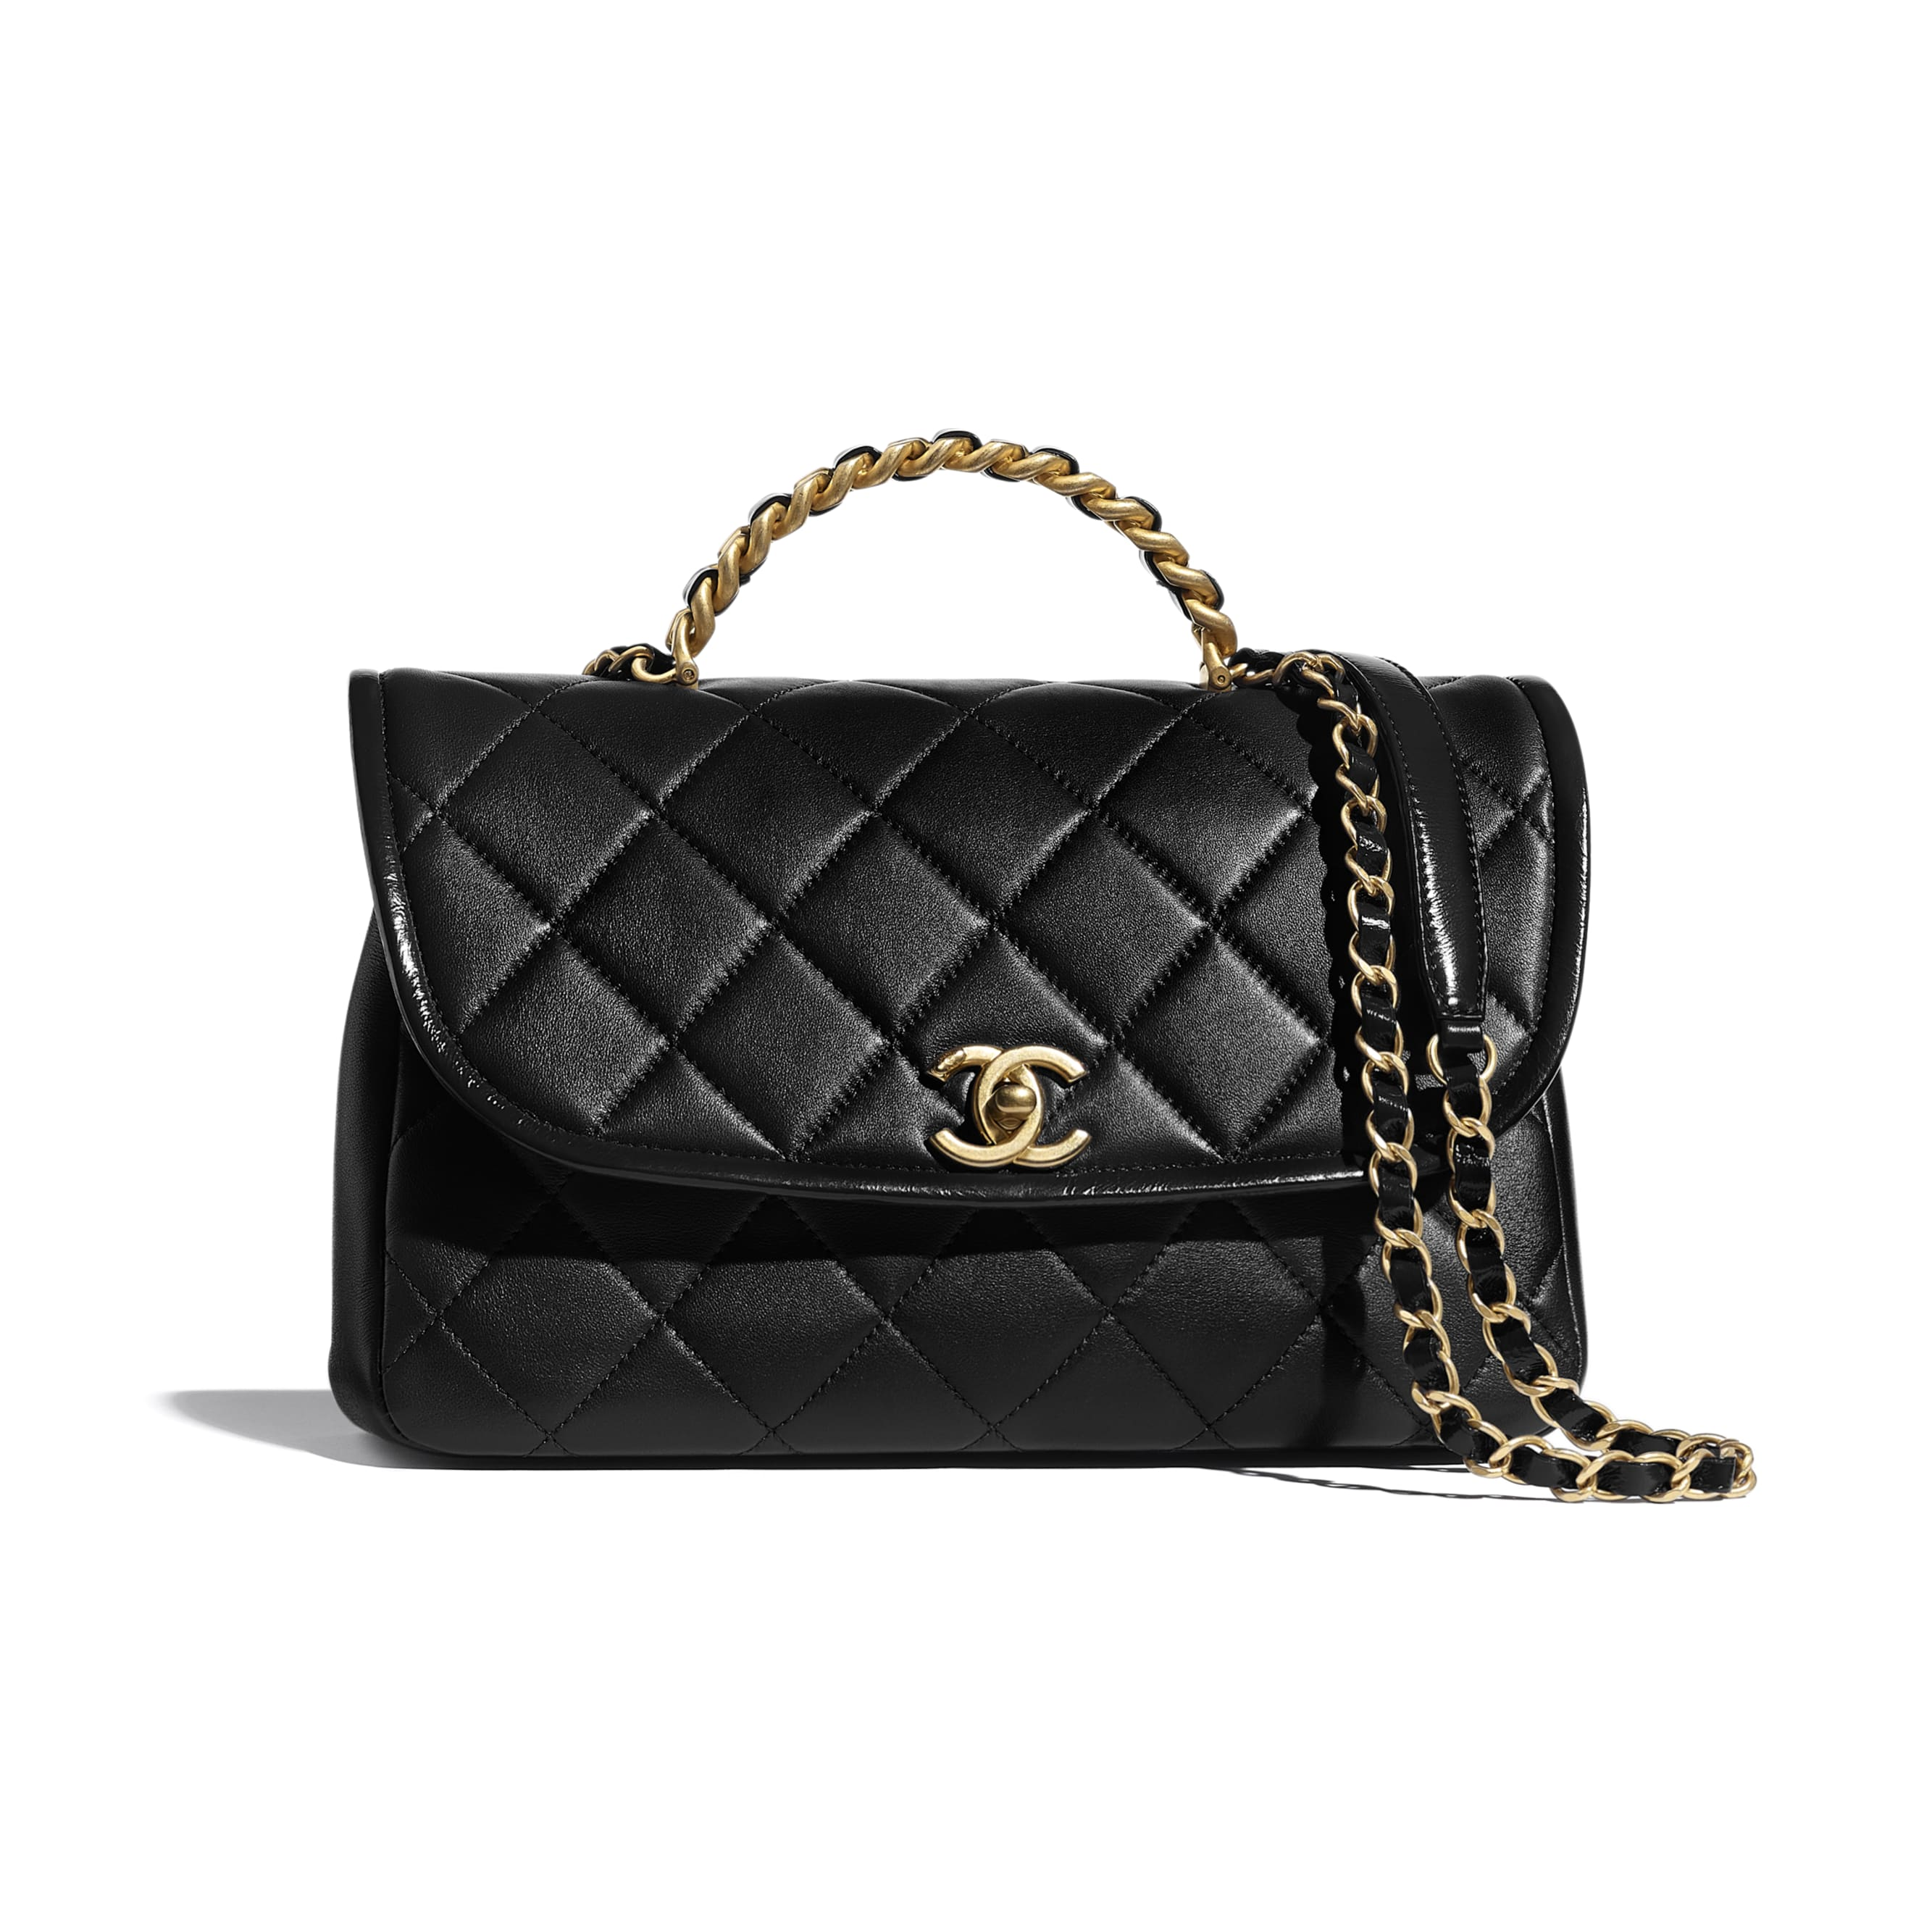 Large Flap Bag With Top Handle - Black - Lambskin, Shiny Crumpled Calfskin & Gold-Tone Metal - CHANEL - Default view - see standard sized version